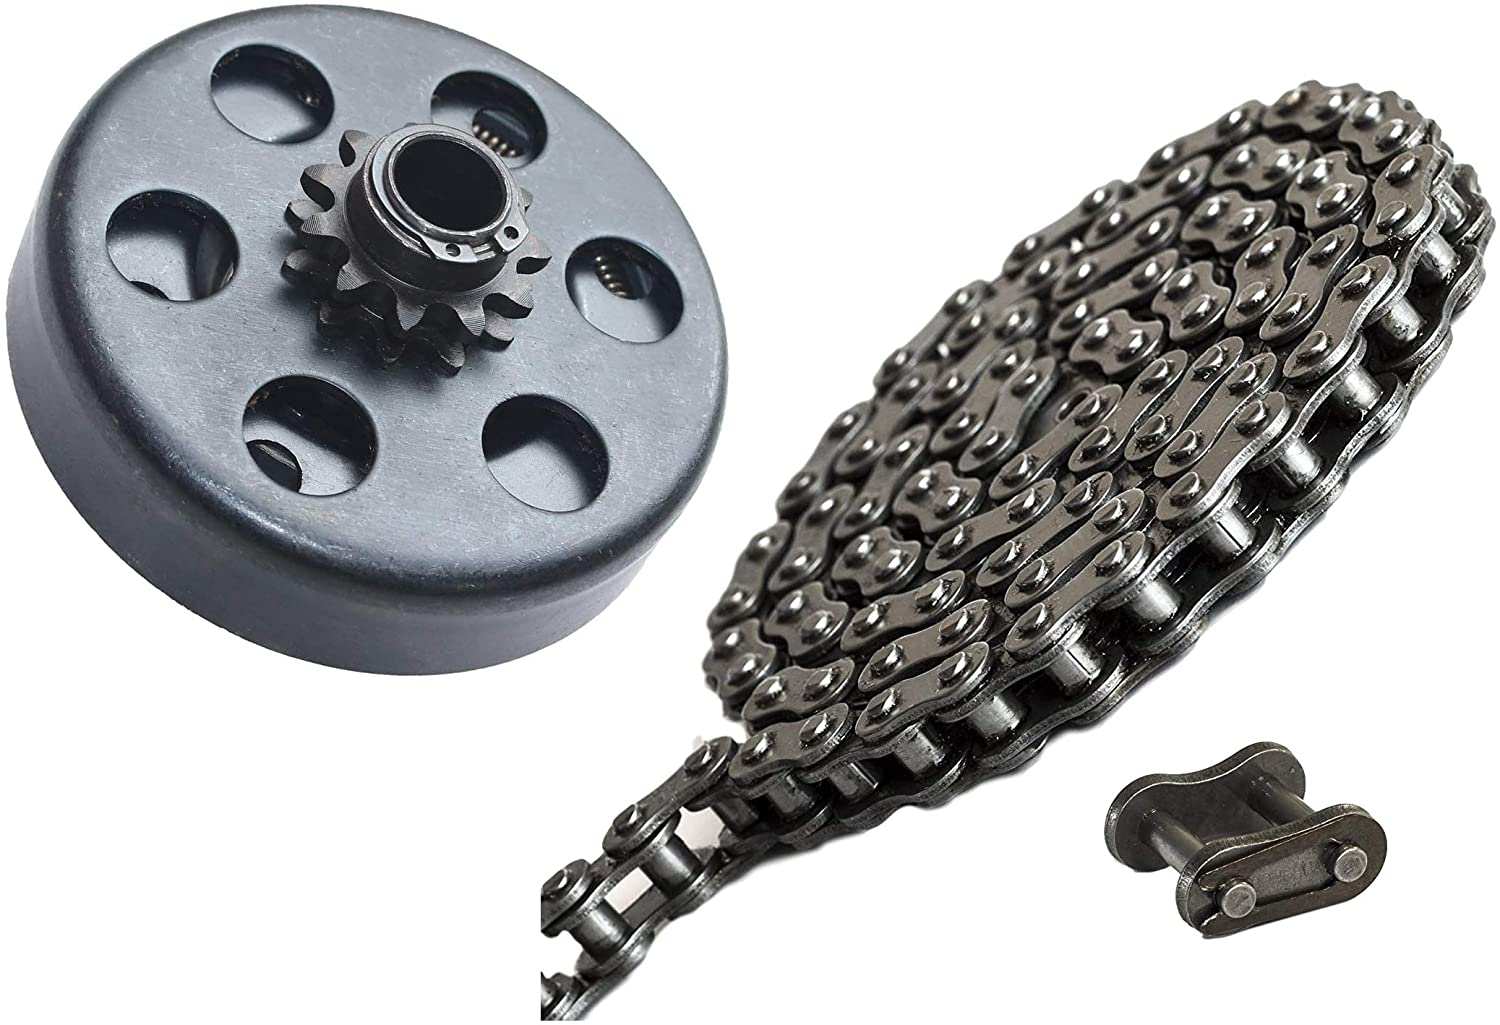 FDJ 11 Tooth Centrifugal Clutch with 35 Roller Chain 10 Feet with Connecting Link